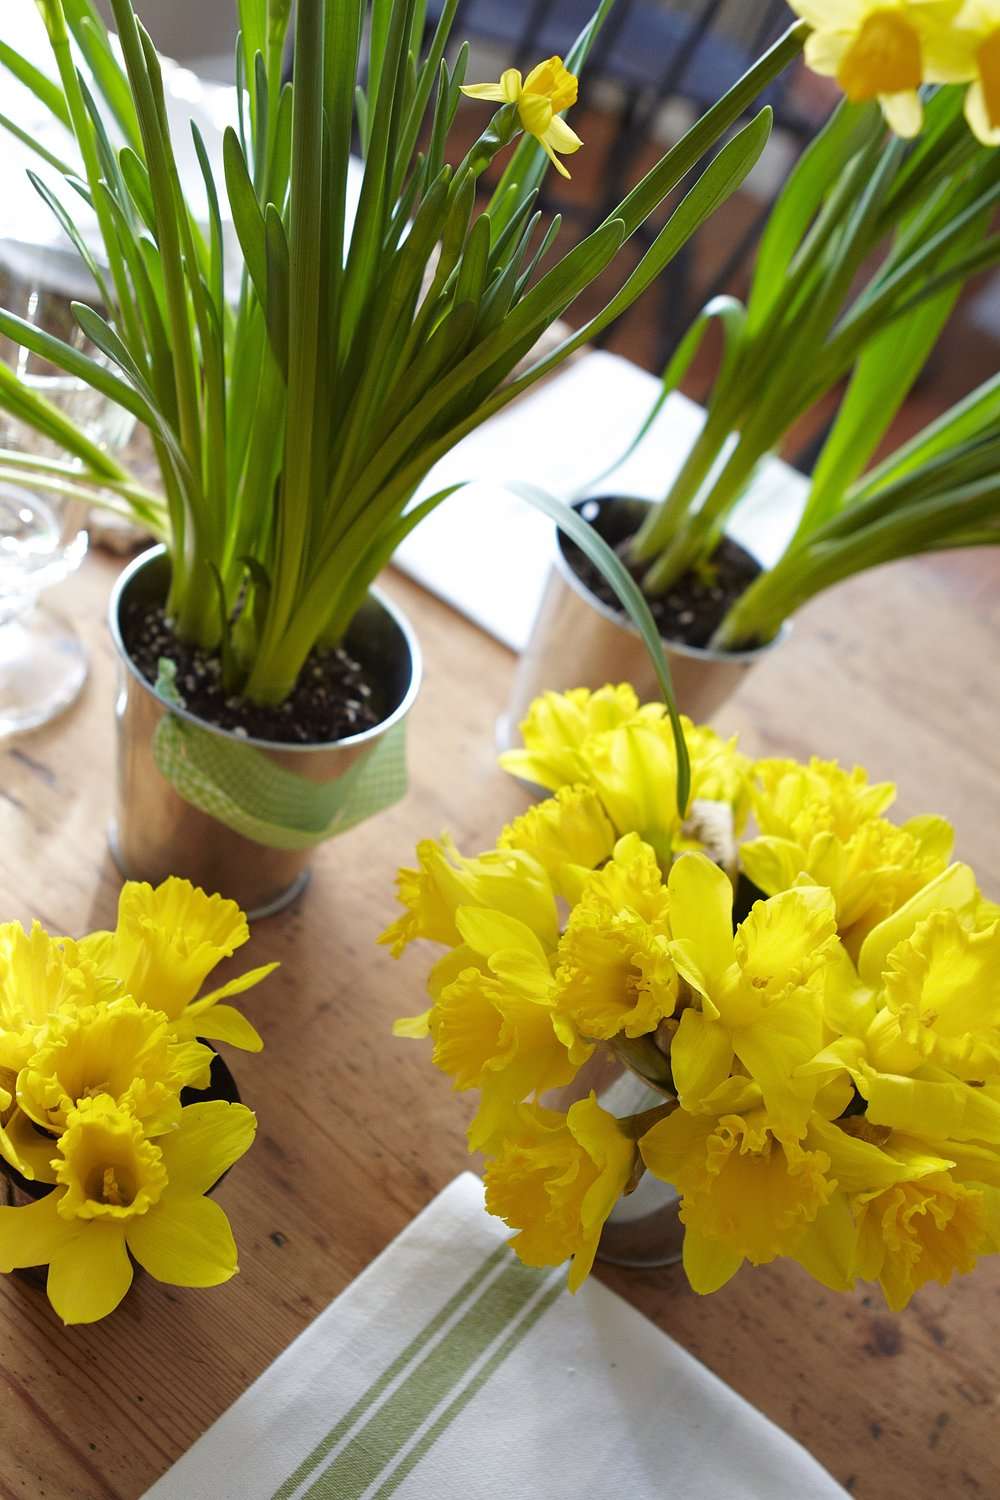 Farmhouse Brunch with daffodils